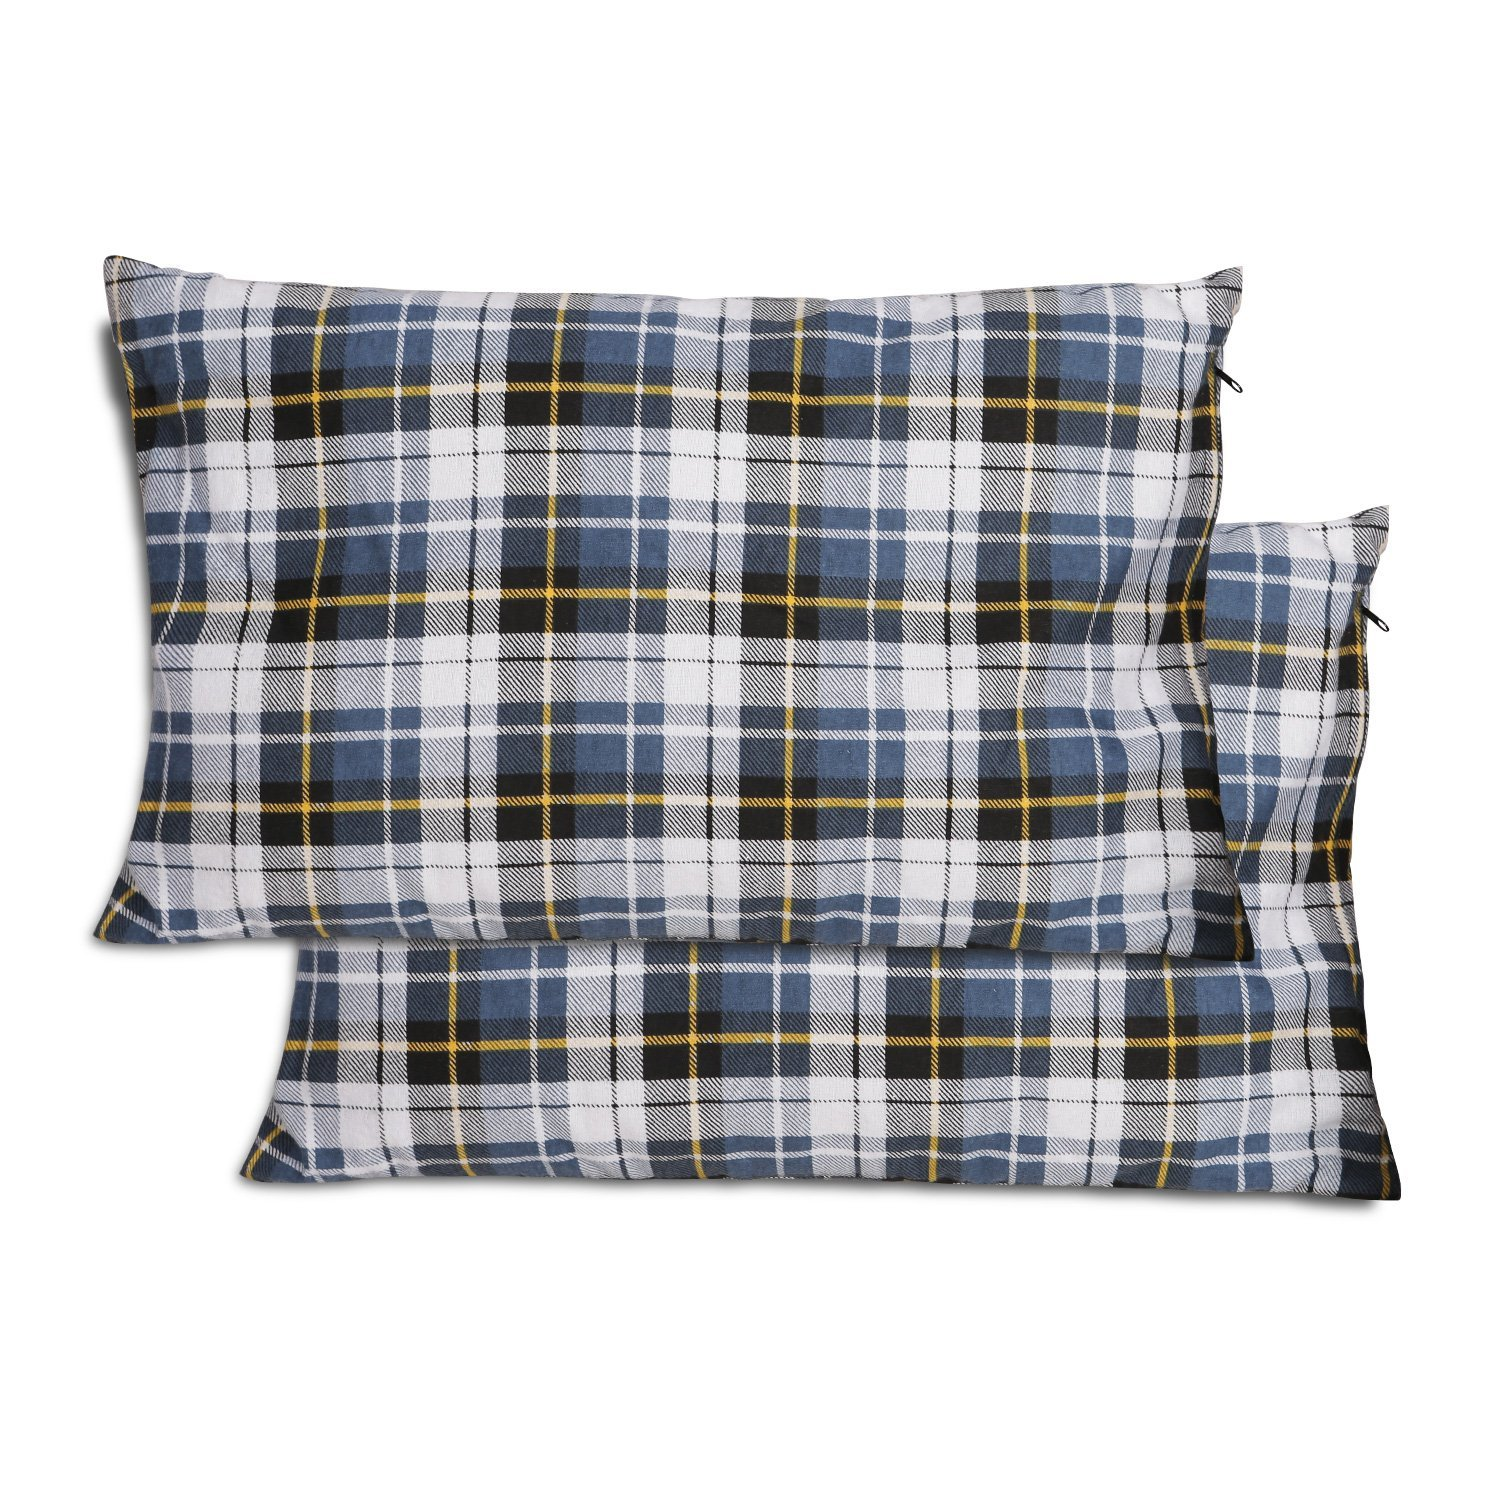 redcamp outdoor camping pillow set of 2 lightweight 2 pack flannel travel pillow cases removable pillow cover